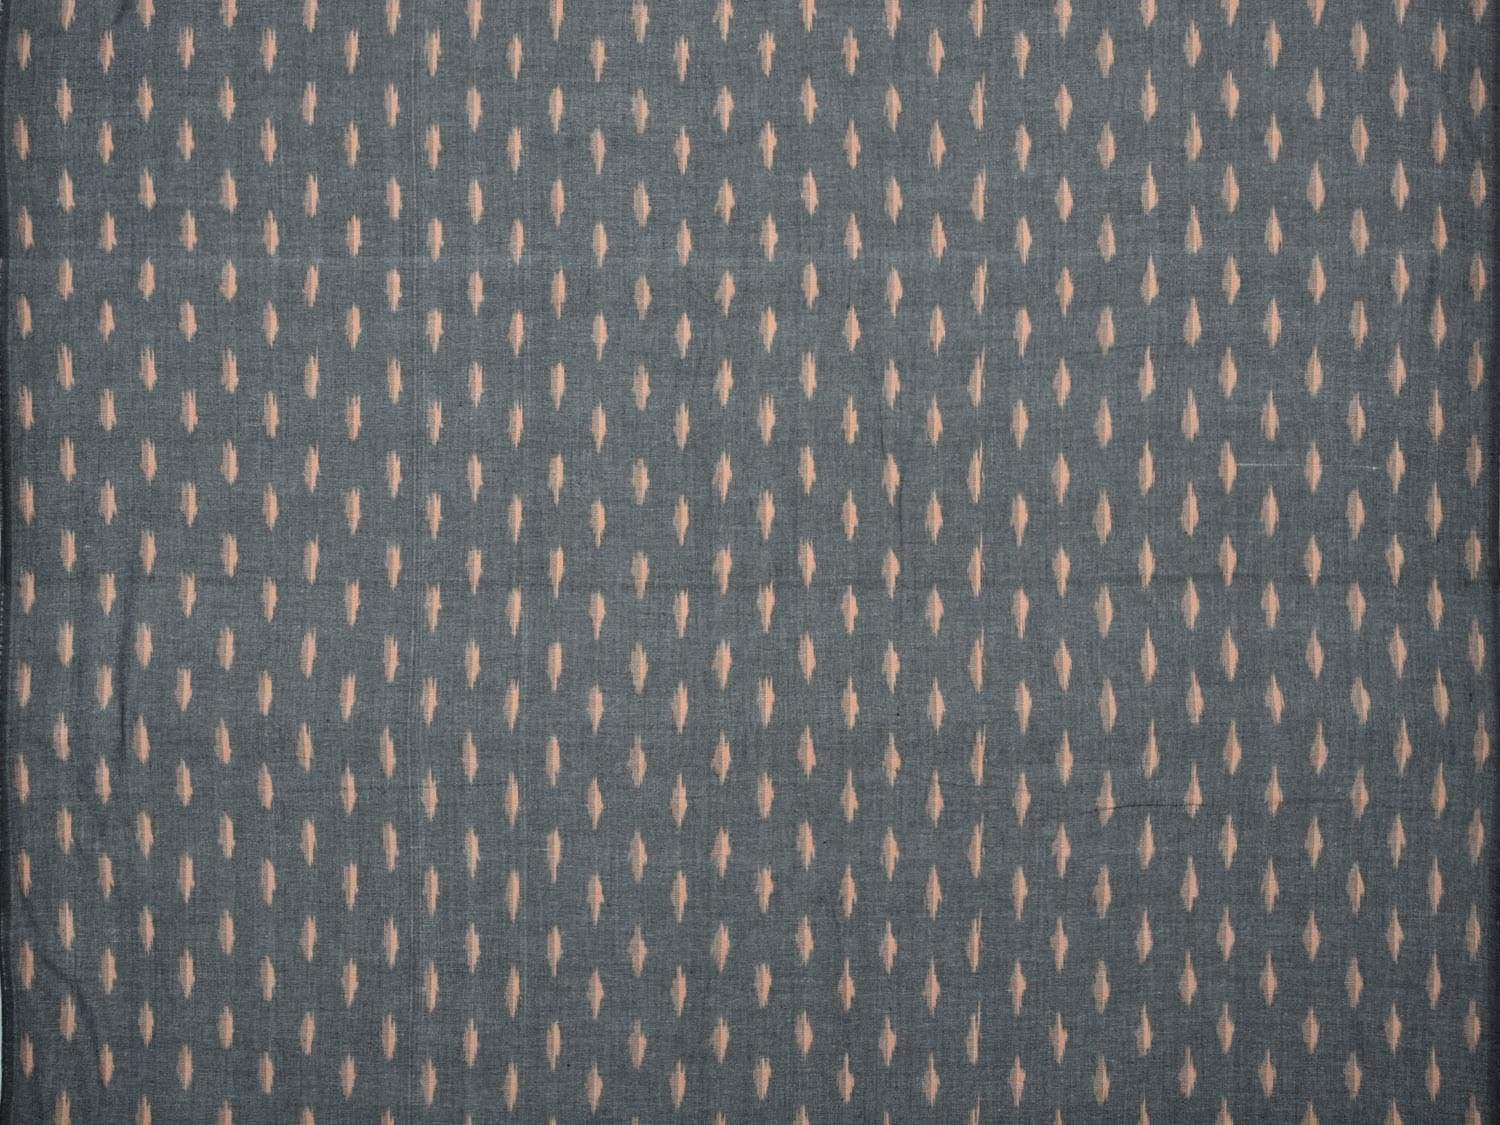 Grey Pochampally Ikat Cotton Handloom Fabric Material with Buta Design f0144